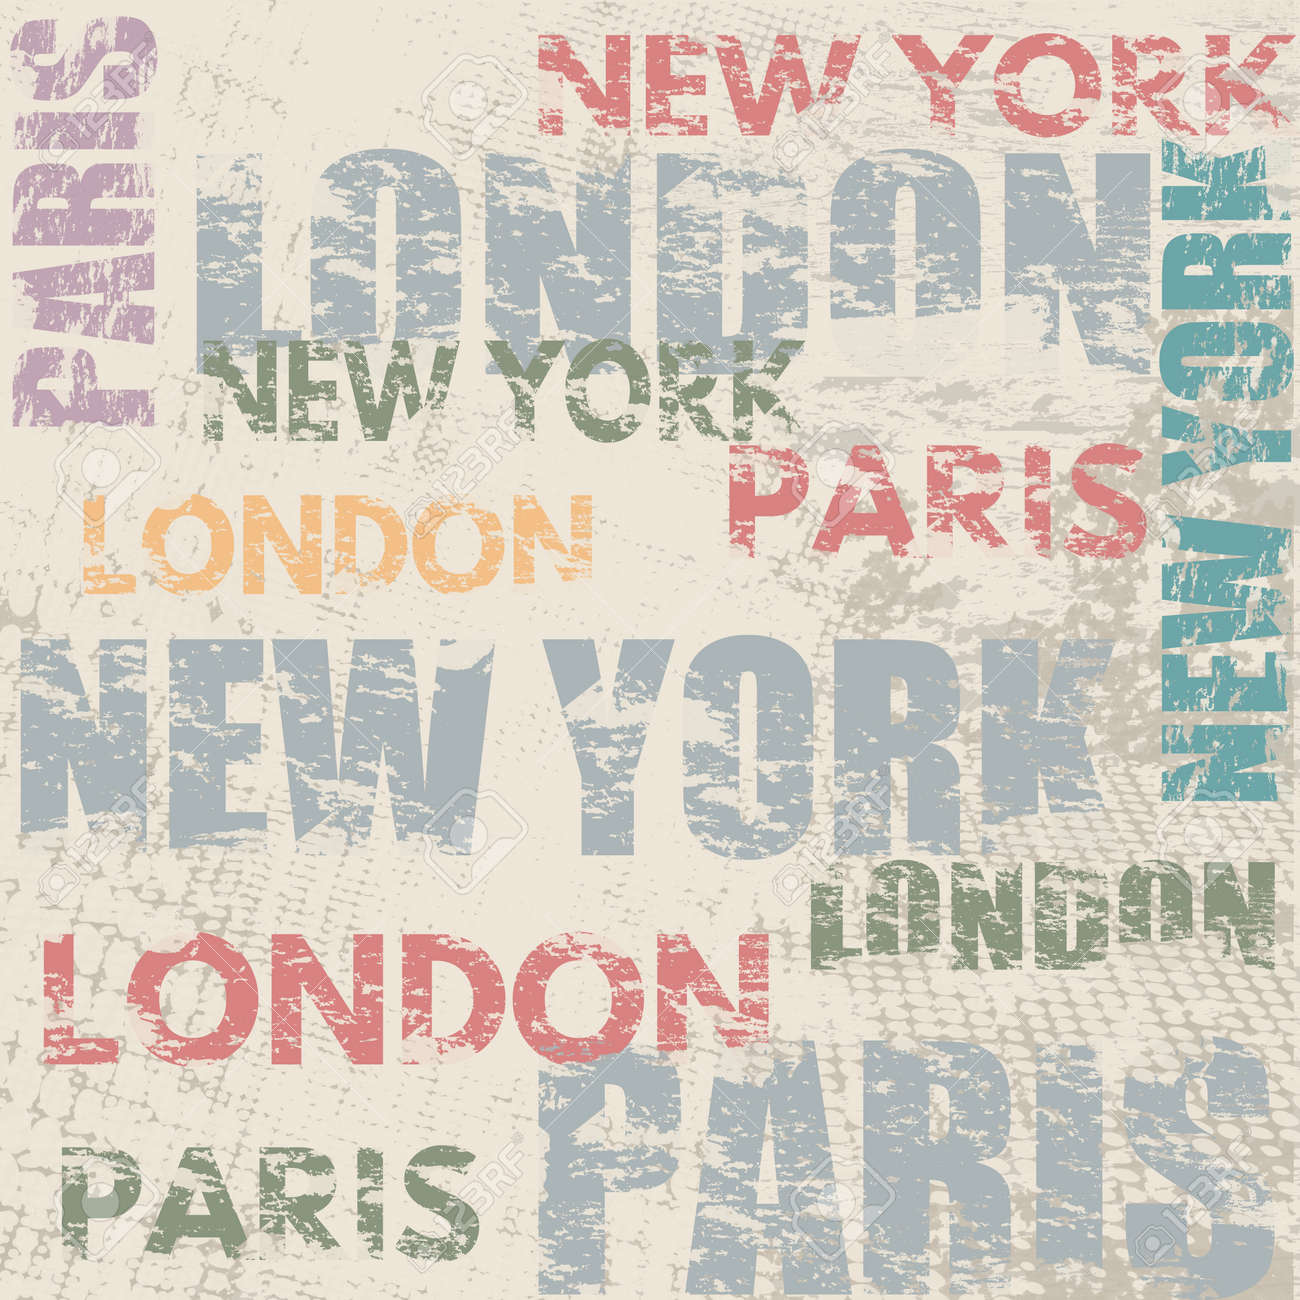 Poster design london - Typographic Poster Design With City Names London Paris And New York On Grunge Scratched Background